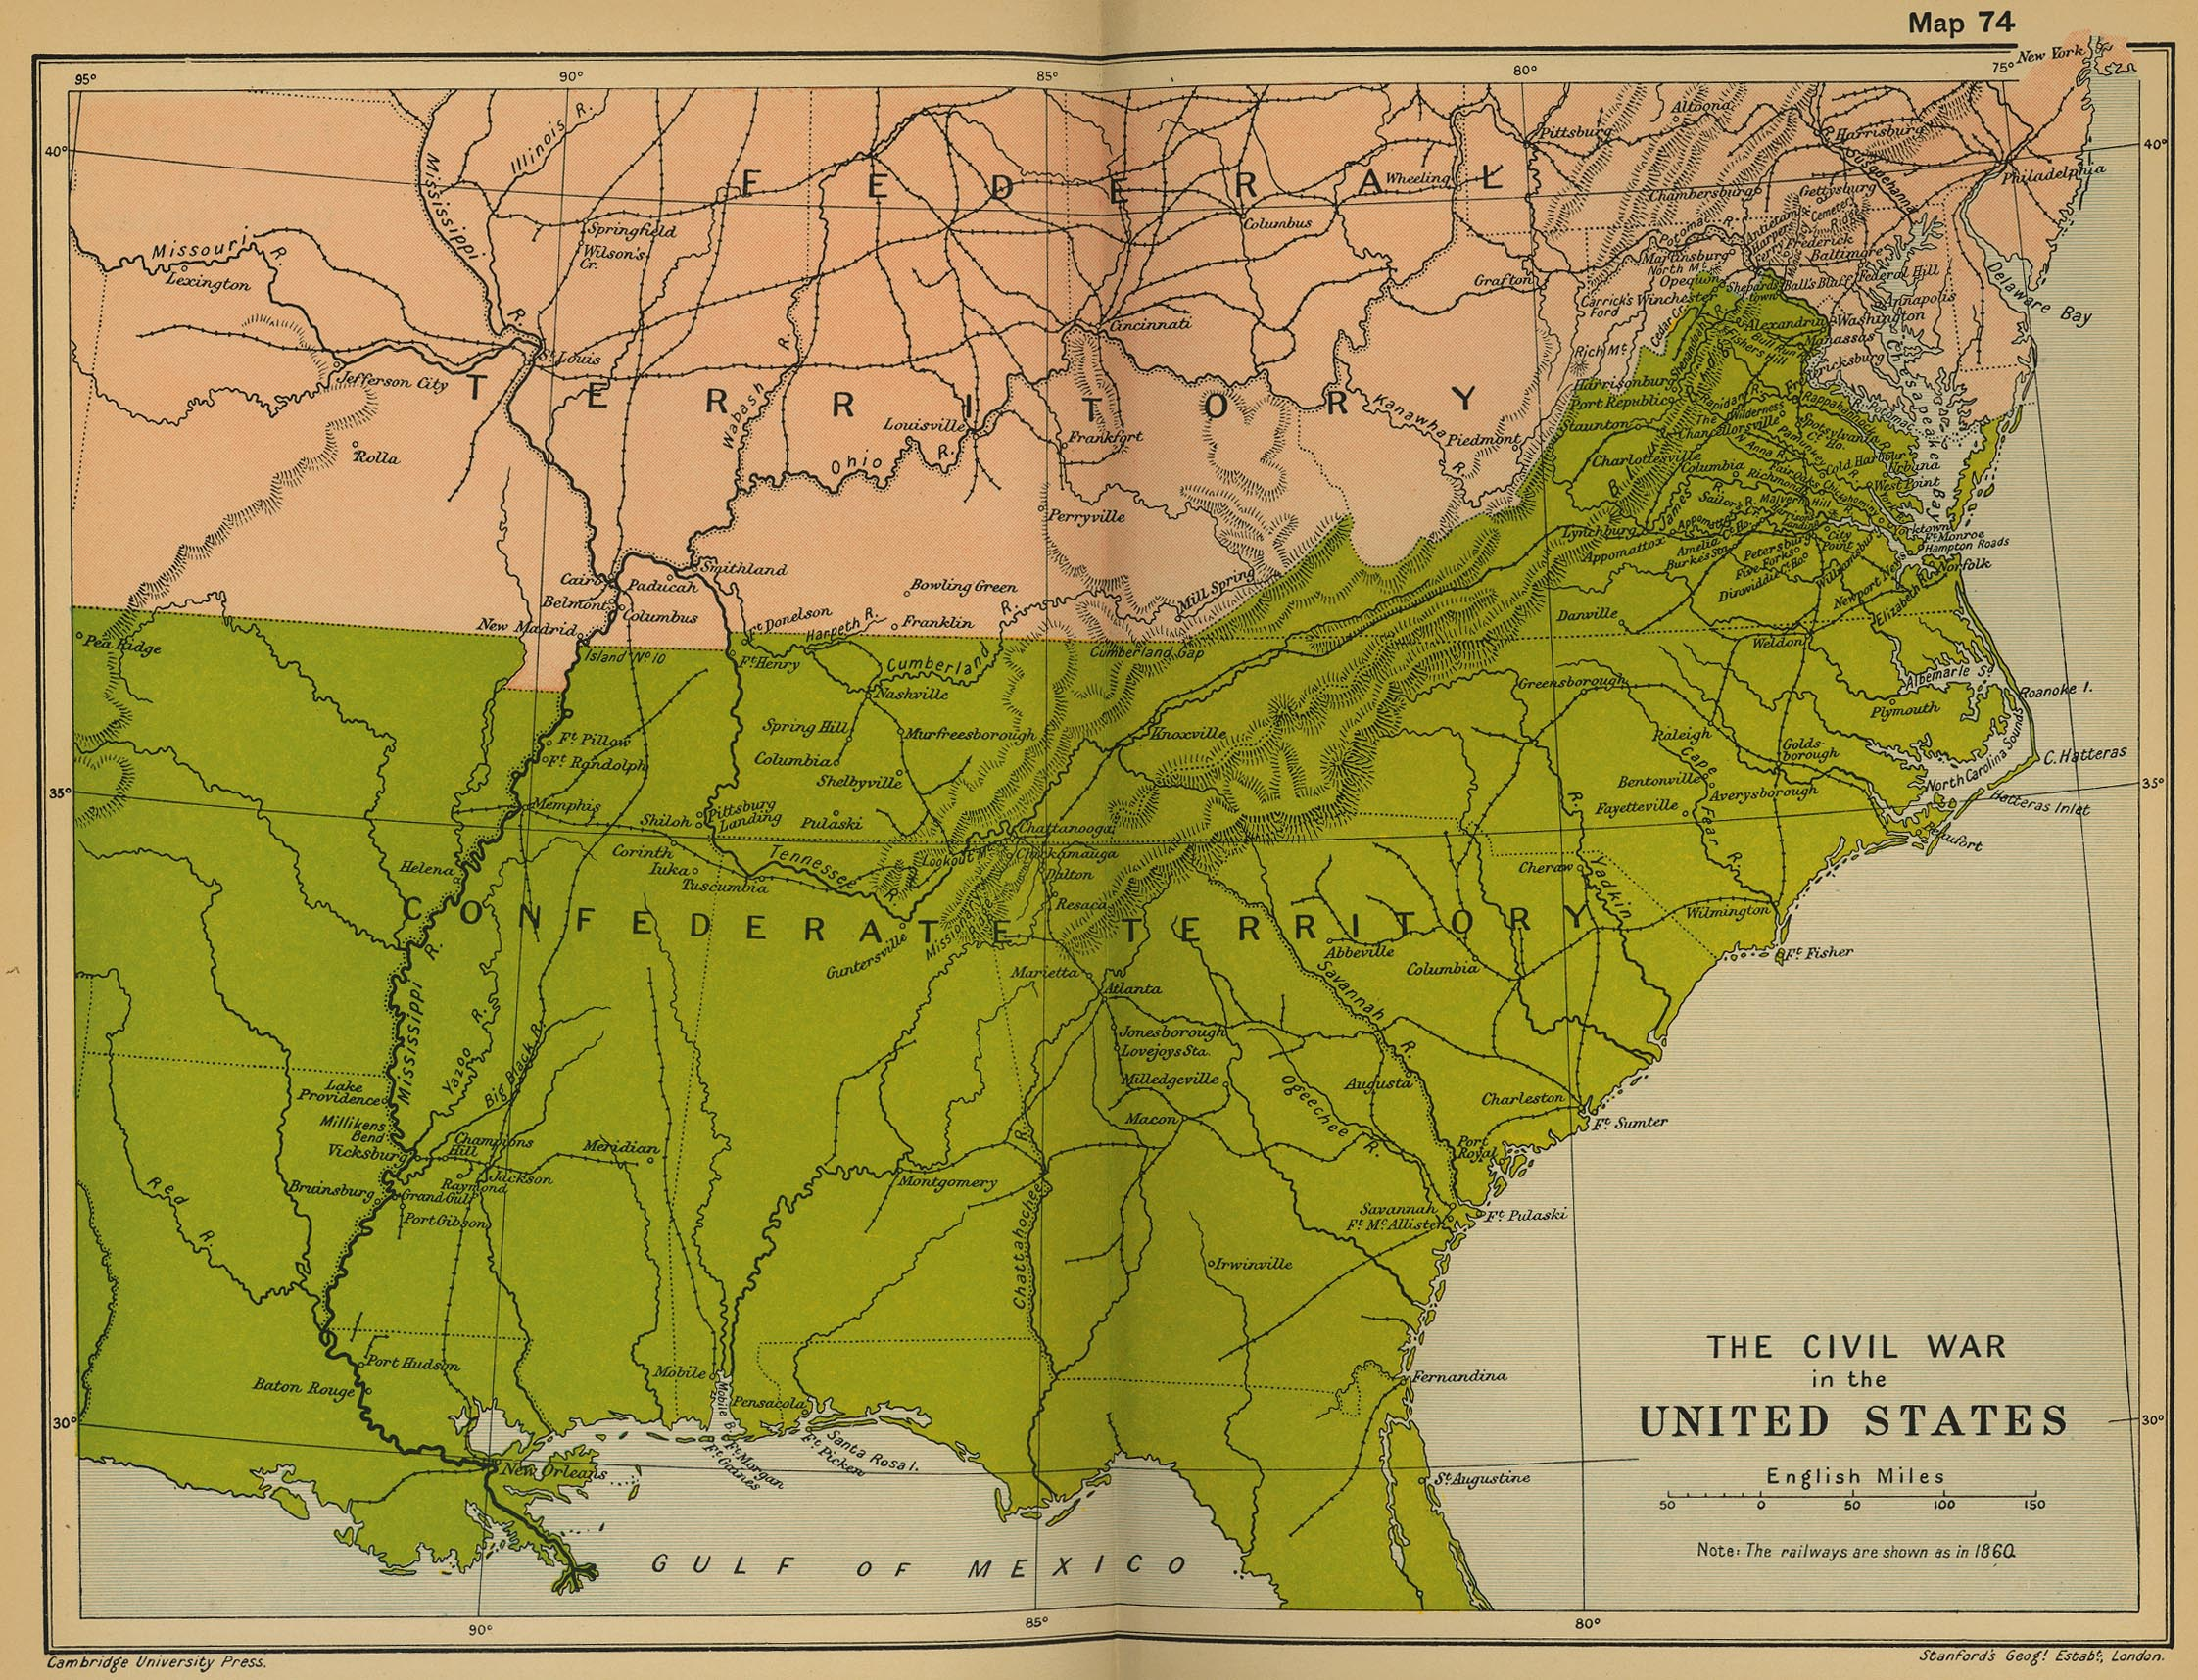 Map Of The Civil War In The United States 1861 1865 - Map-of-the-us-in-1861